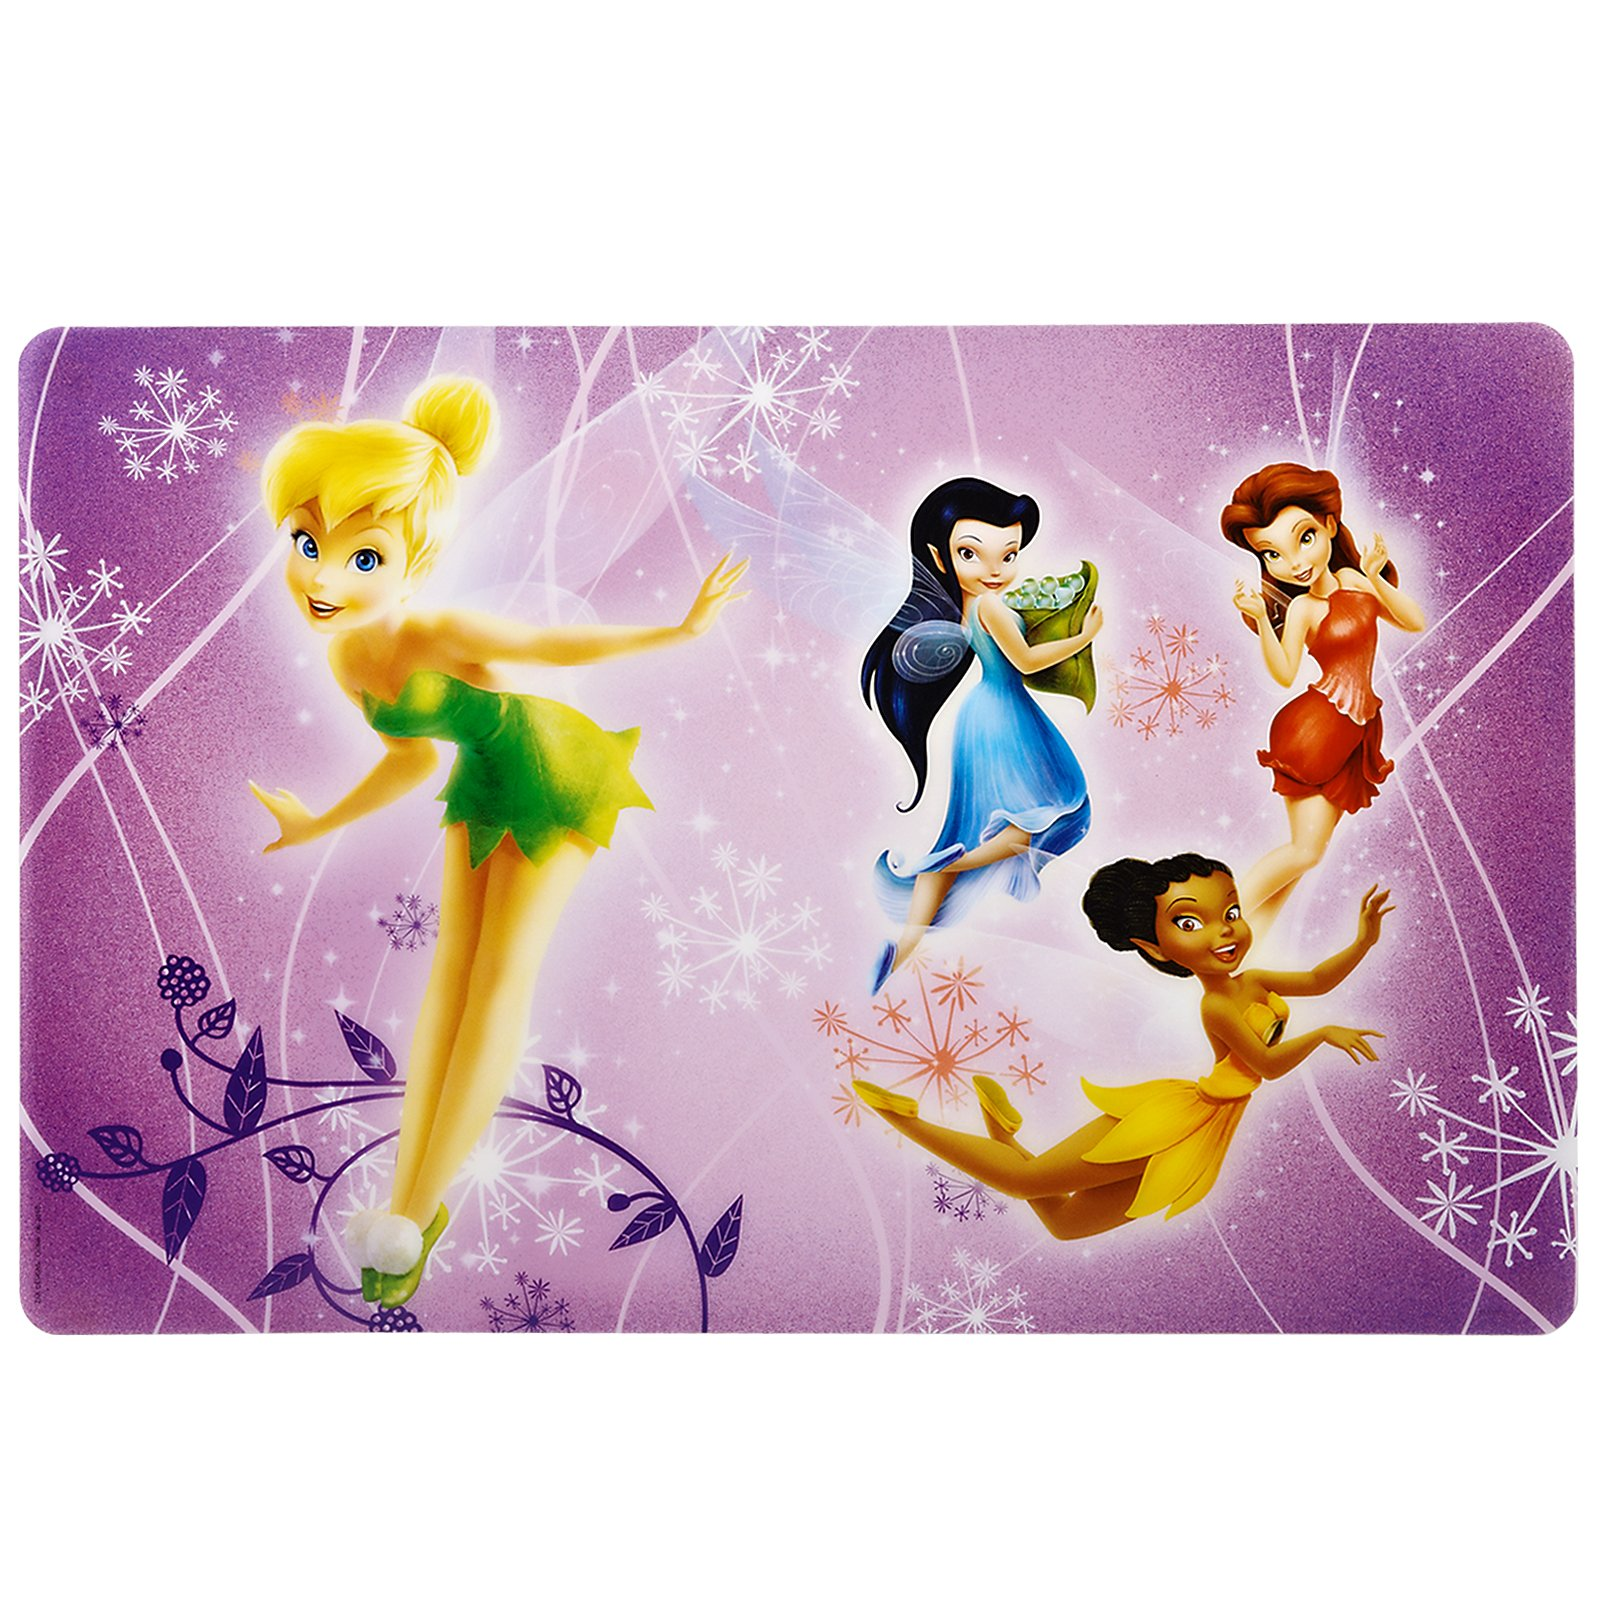 Disney Fairies Placemat (1 count)